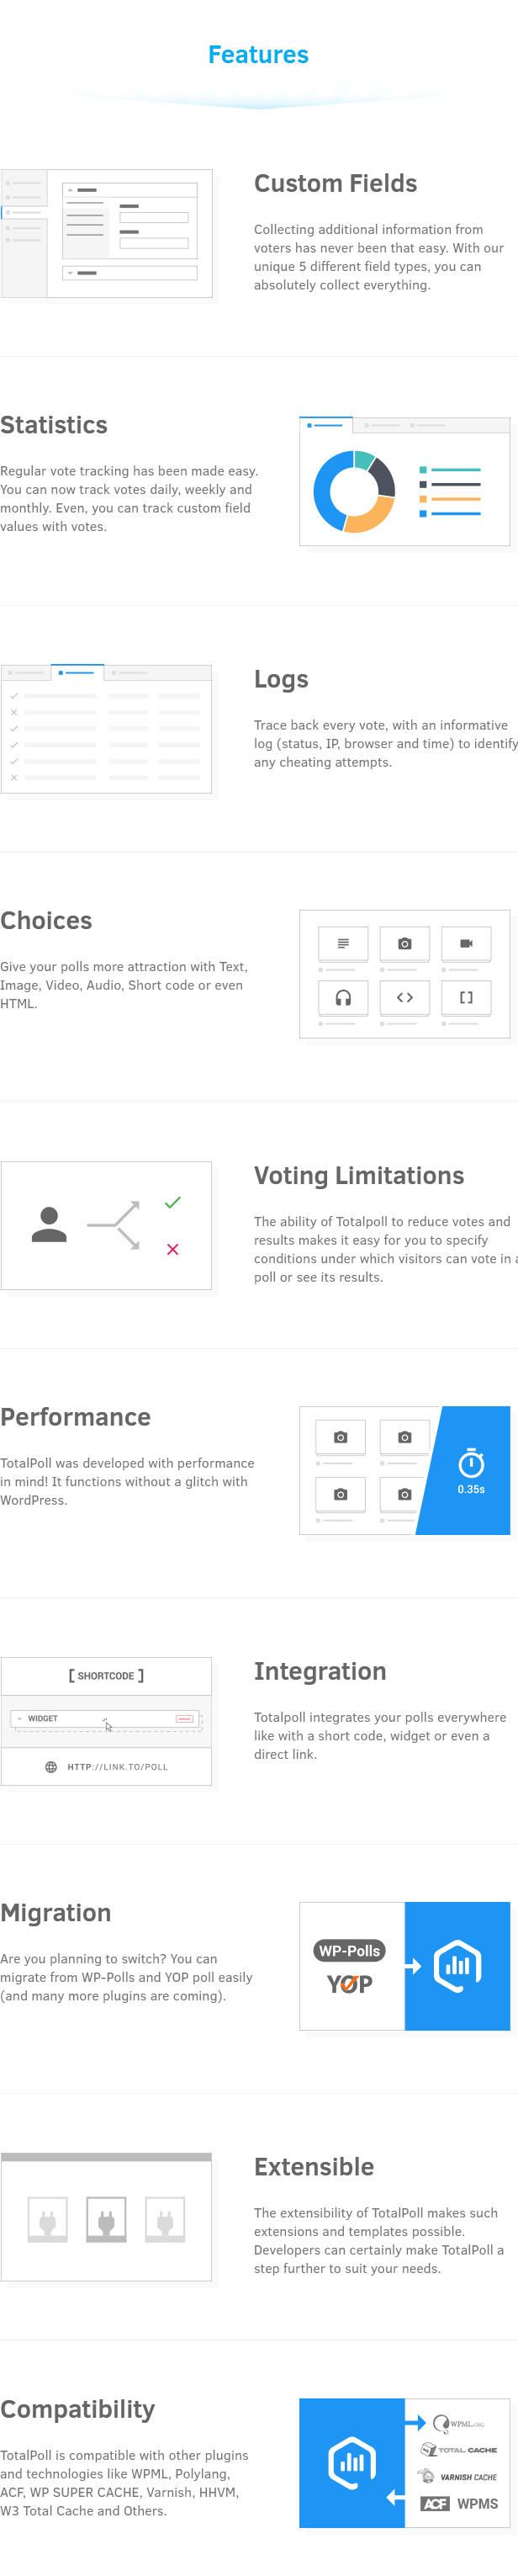 Custom fields, statistics, logs, choices, voting limitations, performance, integration, migration, extensible and compatibility in TotalPoll WordPress poll plugin.  - 10 features overview - TotalPoll Pro – Responsive WordPress Poll Plugin